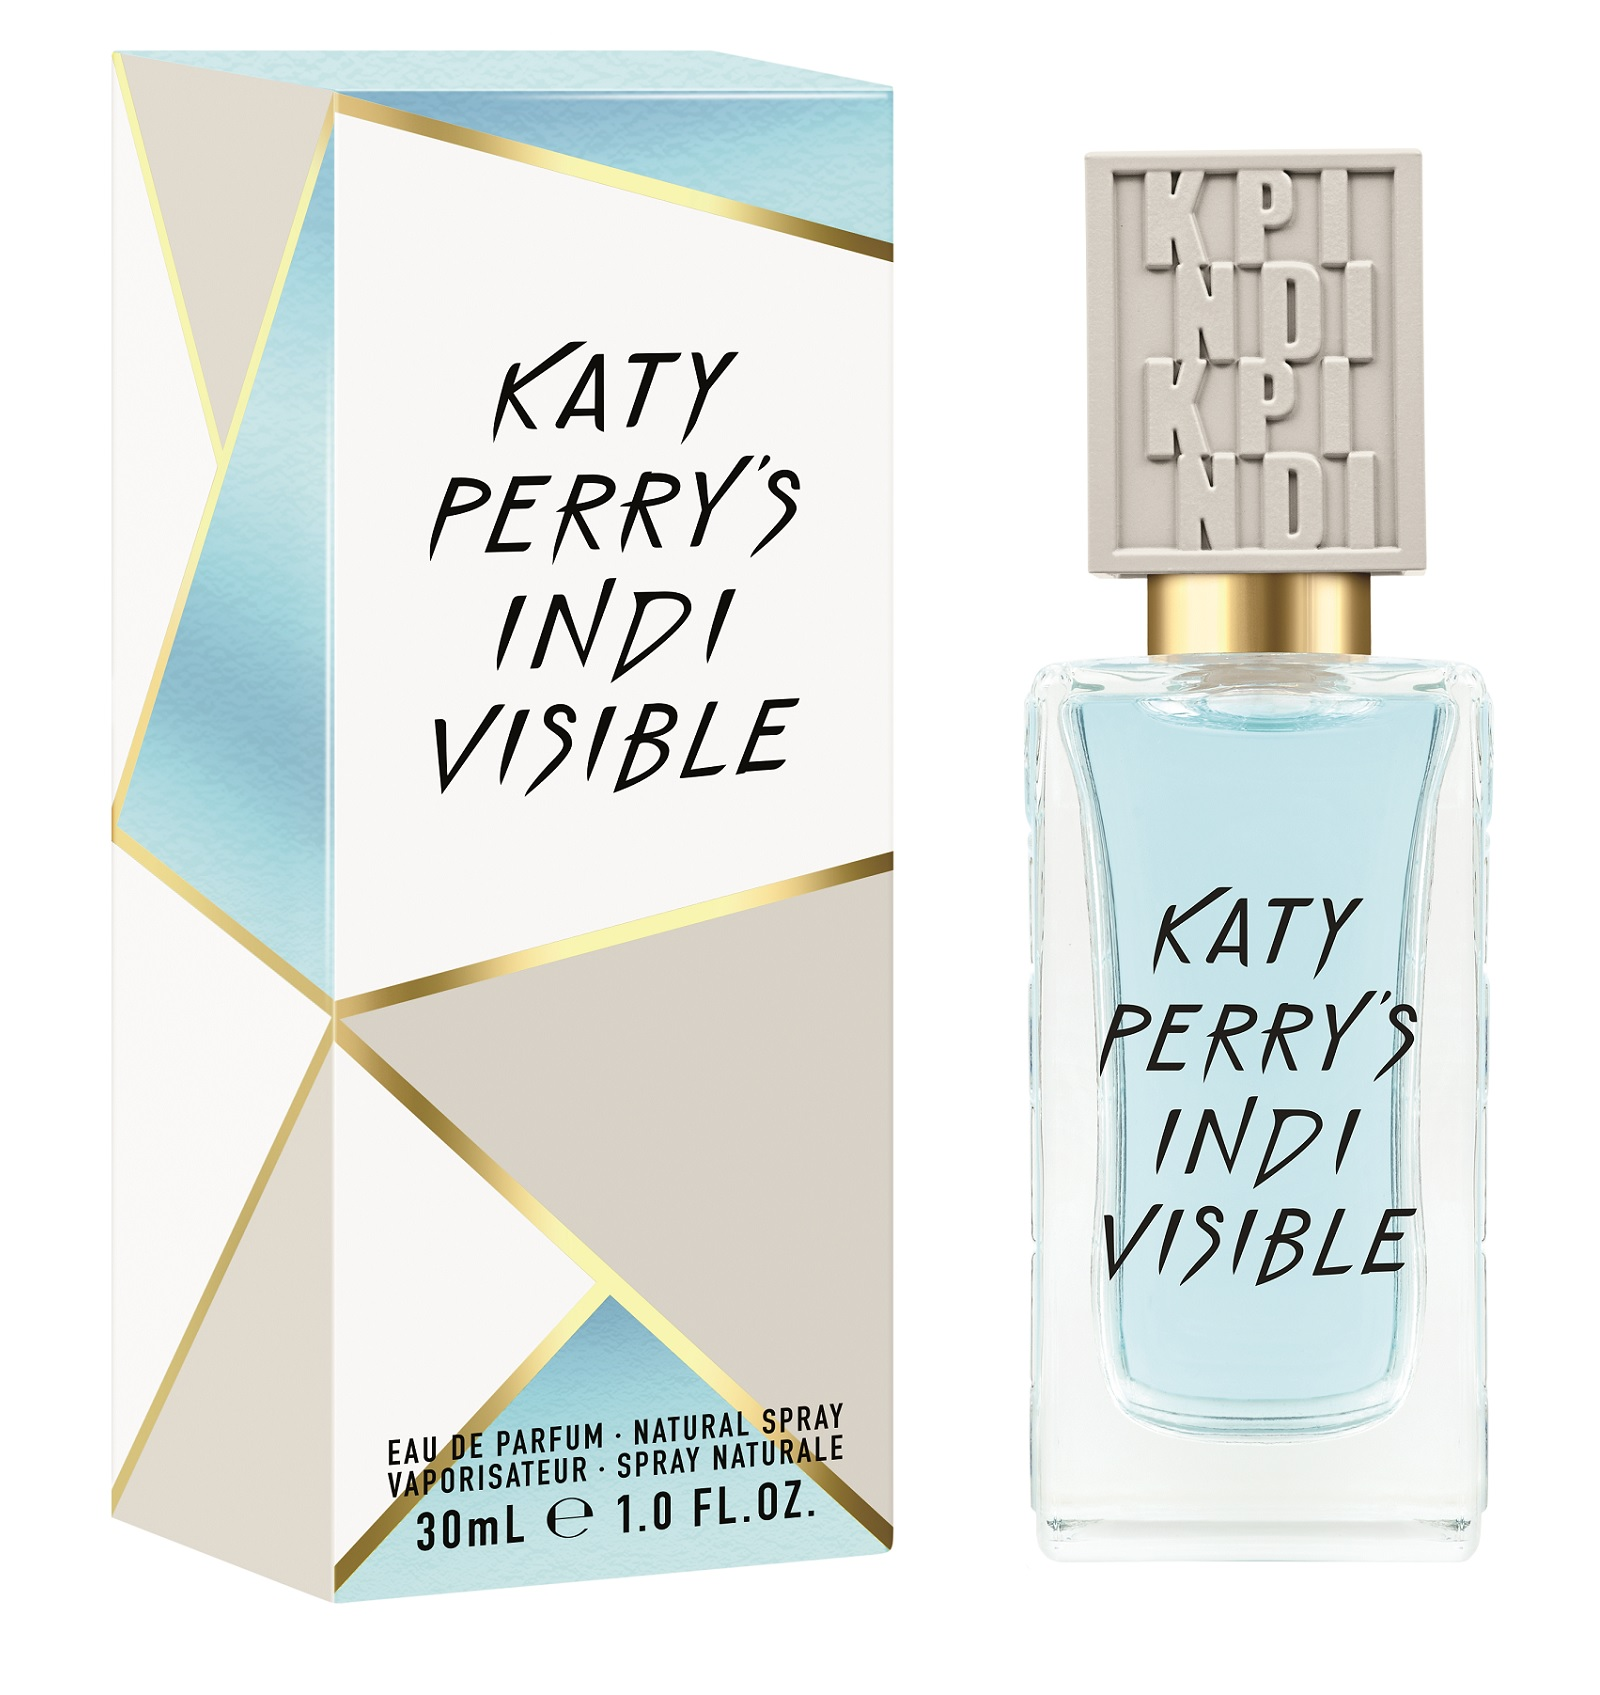 Katy Perrys Indi Visible Katy Perry Perfume A New Fragrance For